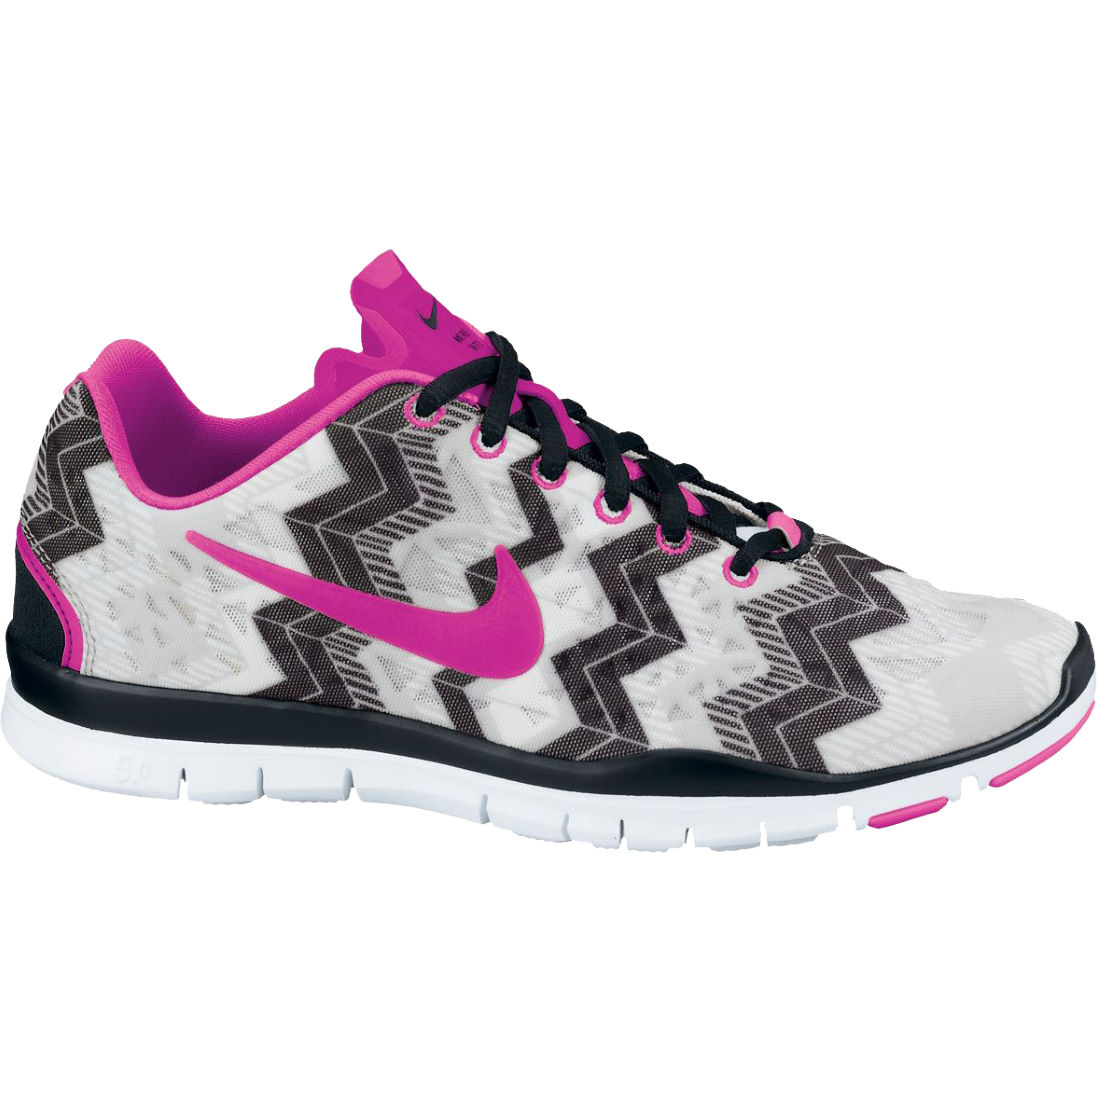 Wiggle Italia | Nike Ladies Free TR Fit 3 Printed Shoes - HO13 Scarpe